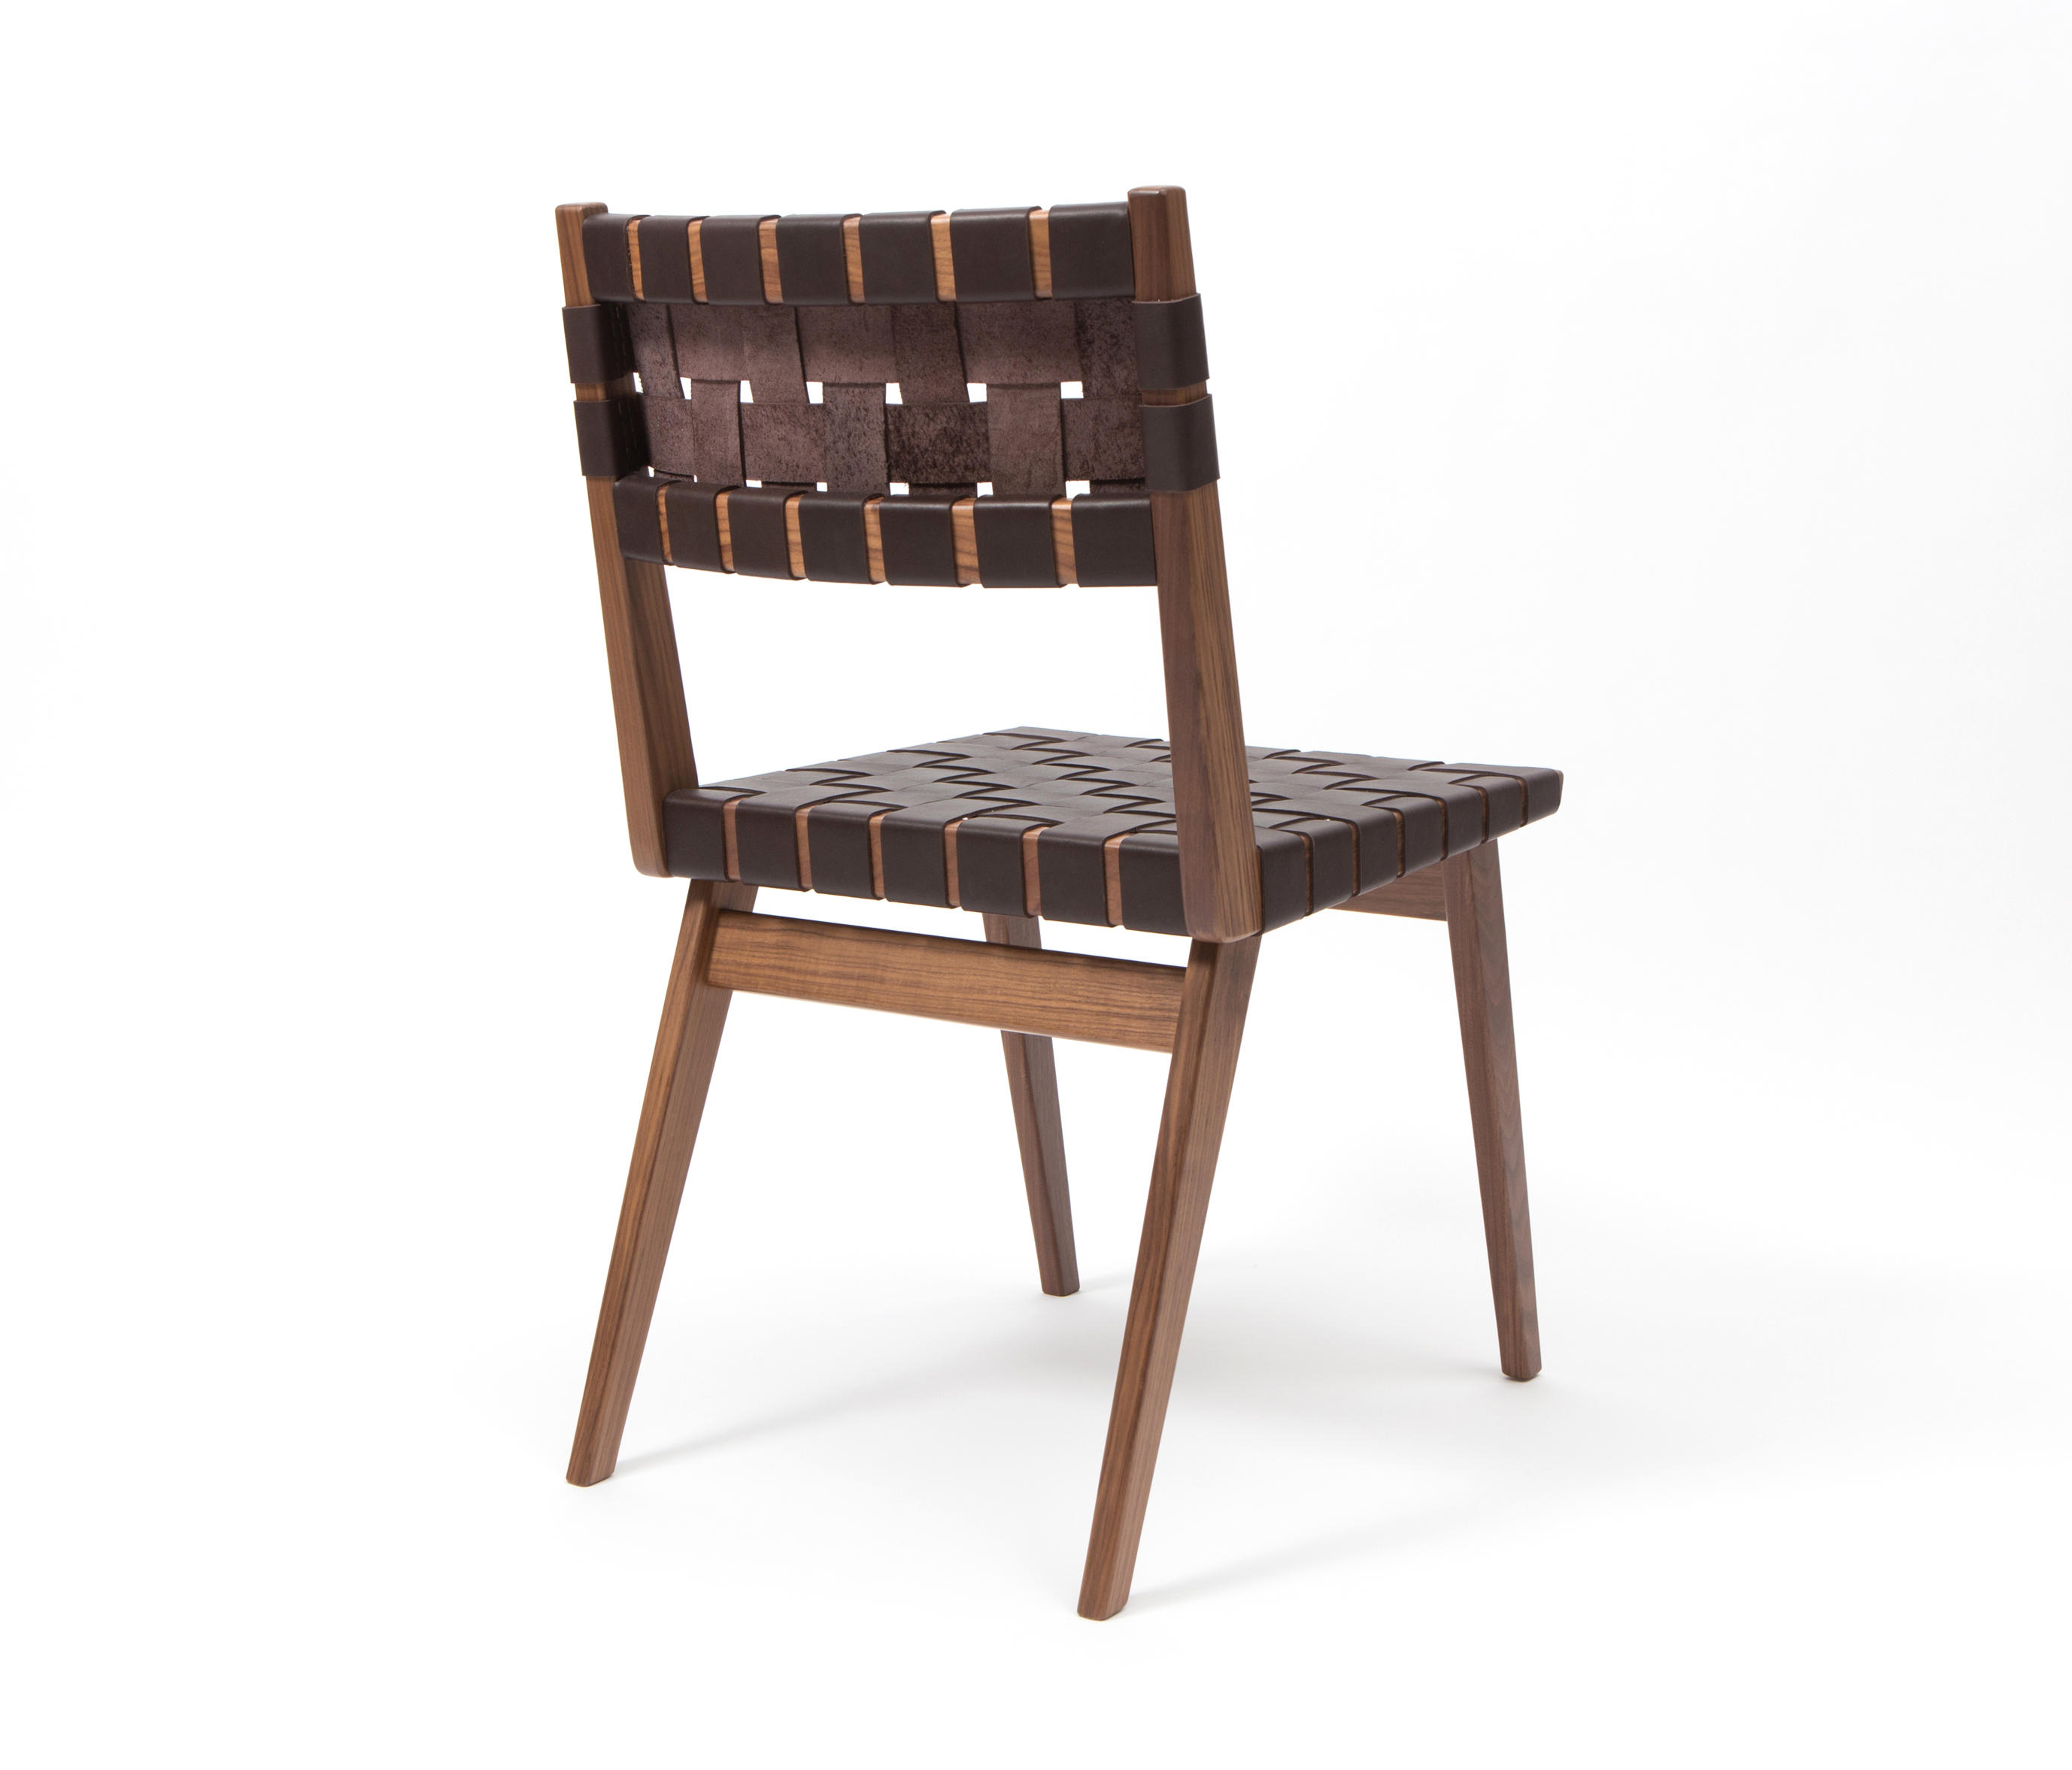 Woven Dining Chairs: Restaurant Chairs From Smilow